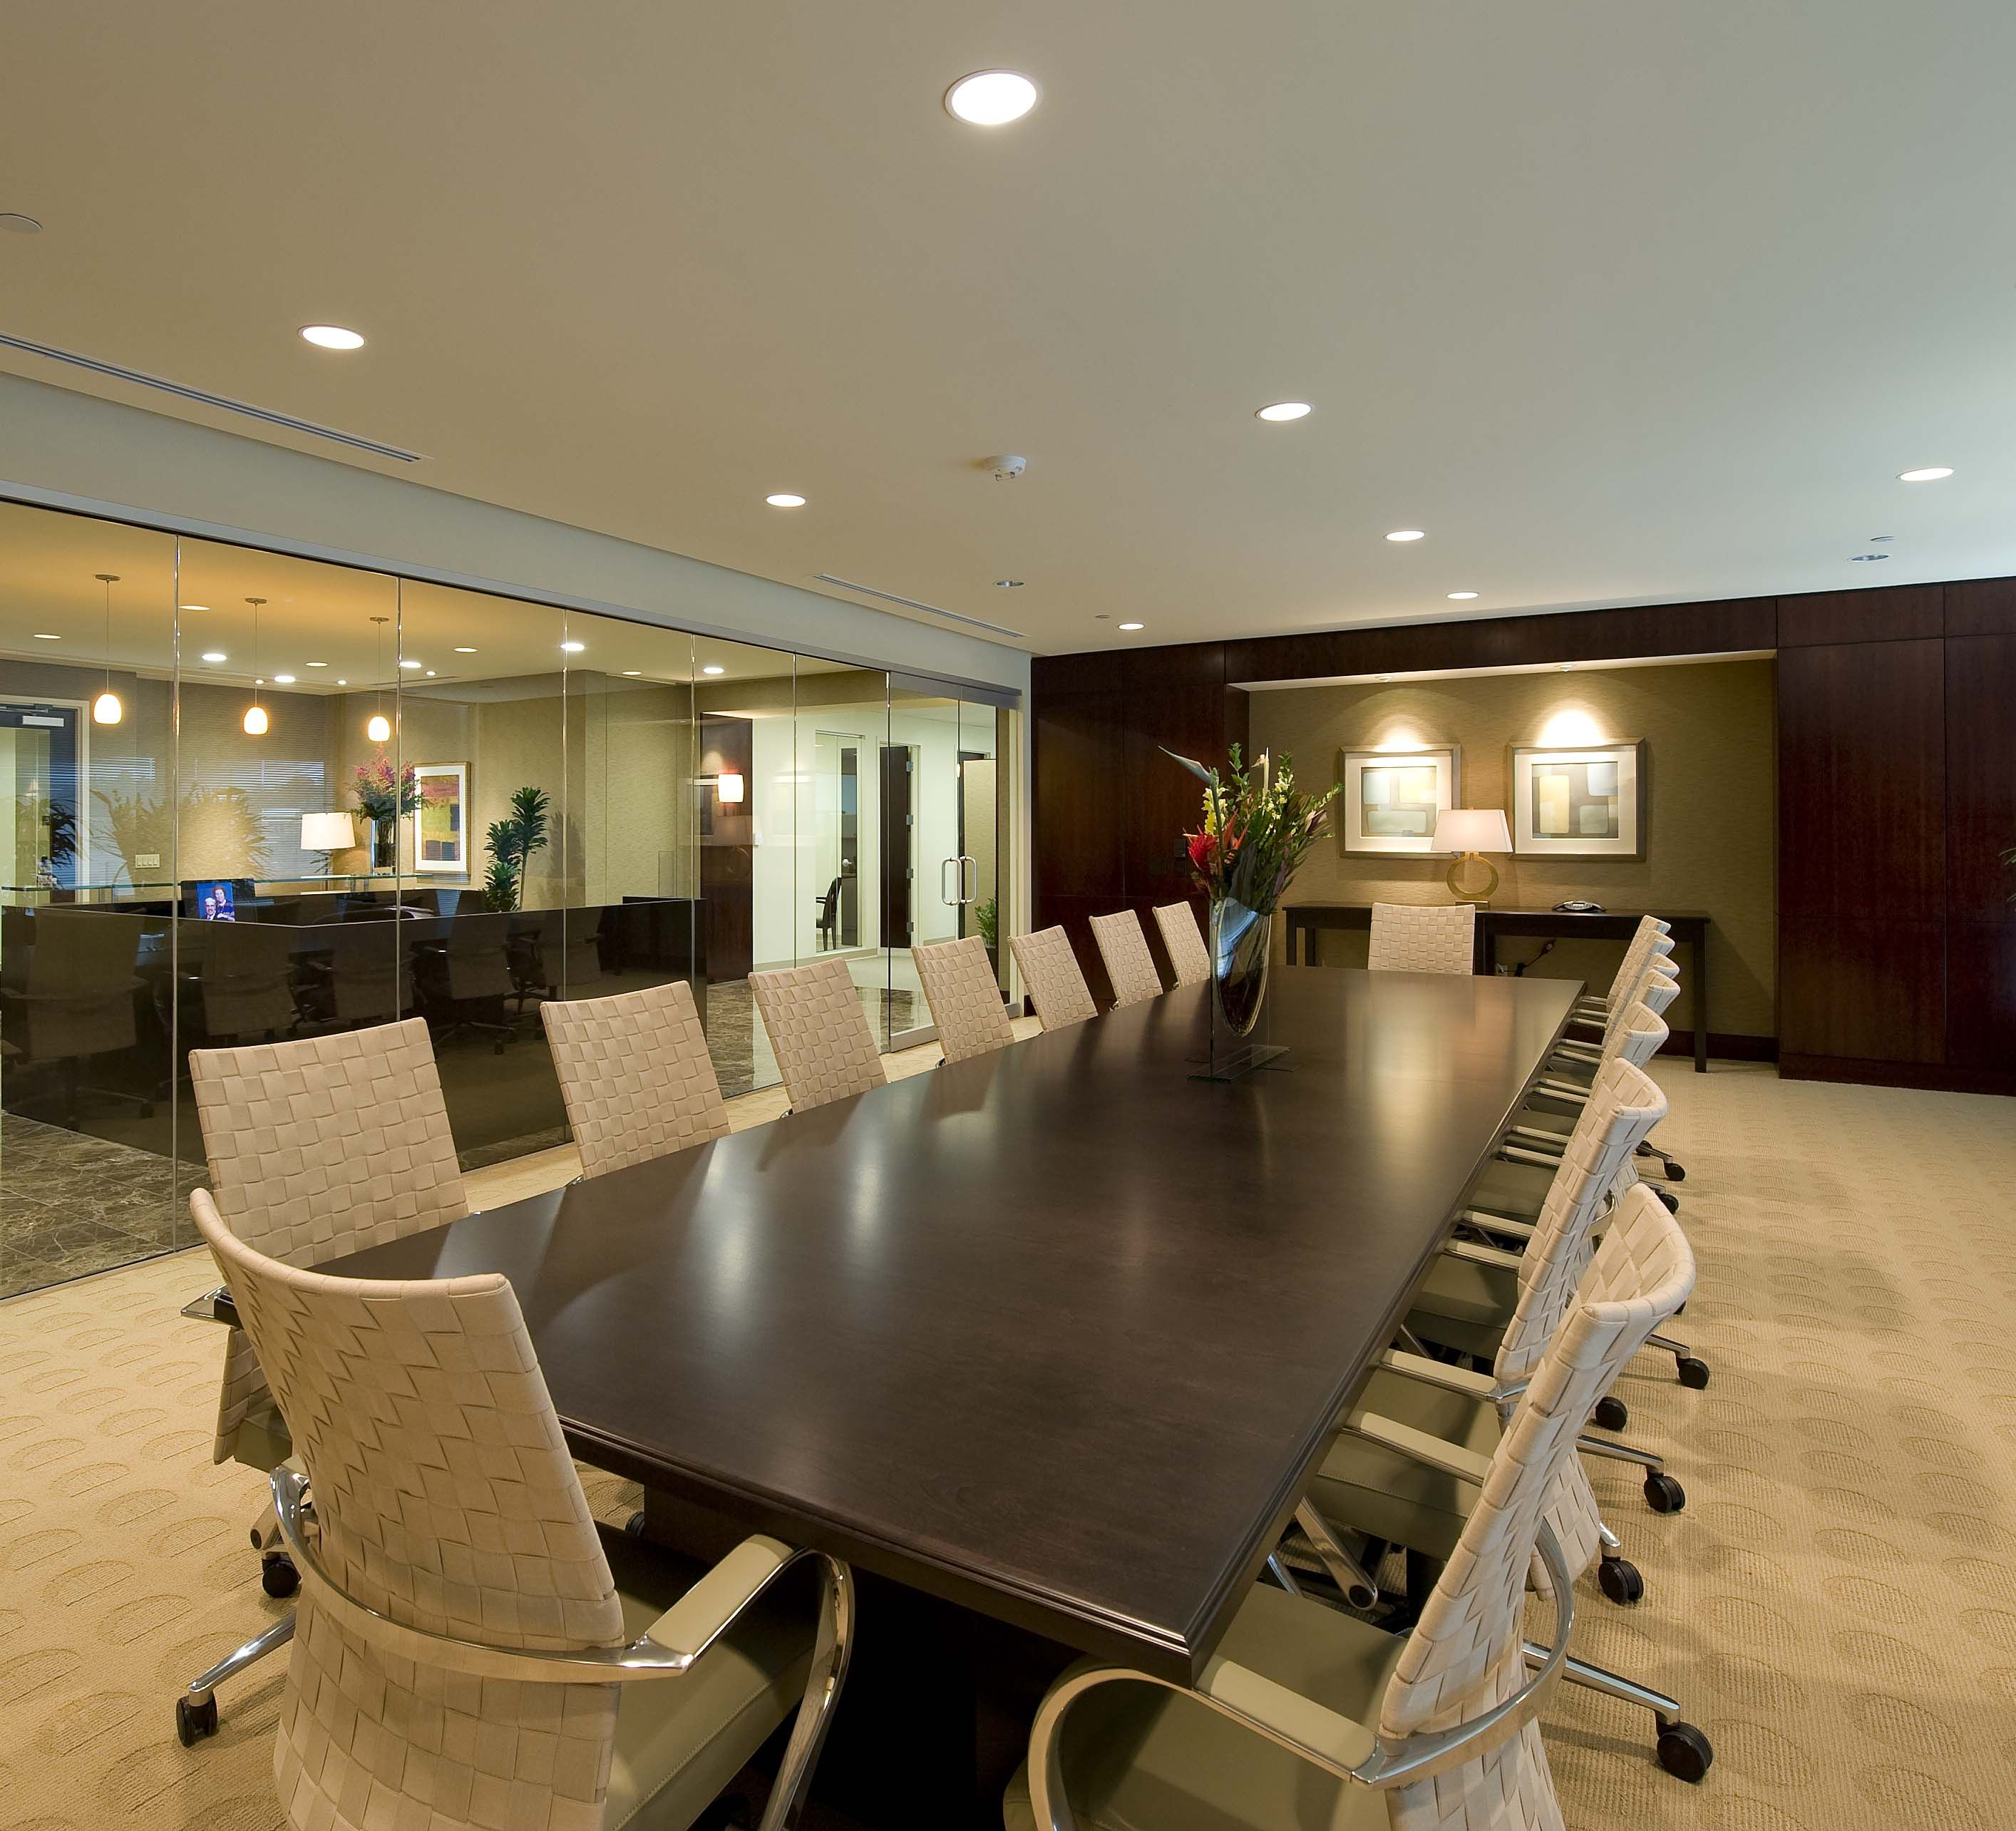 ashly anderson » Executive Conference Room  Modern office space